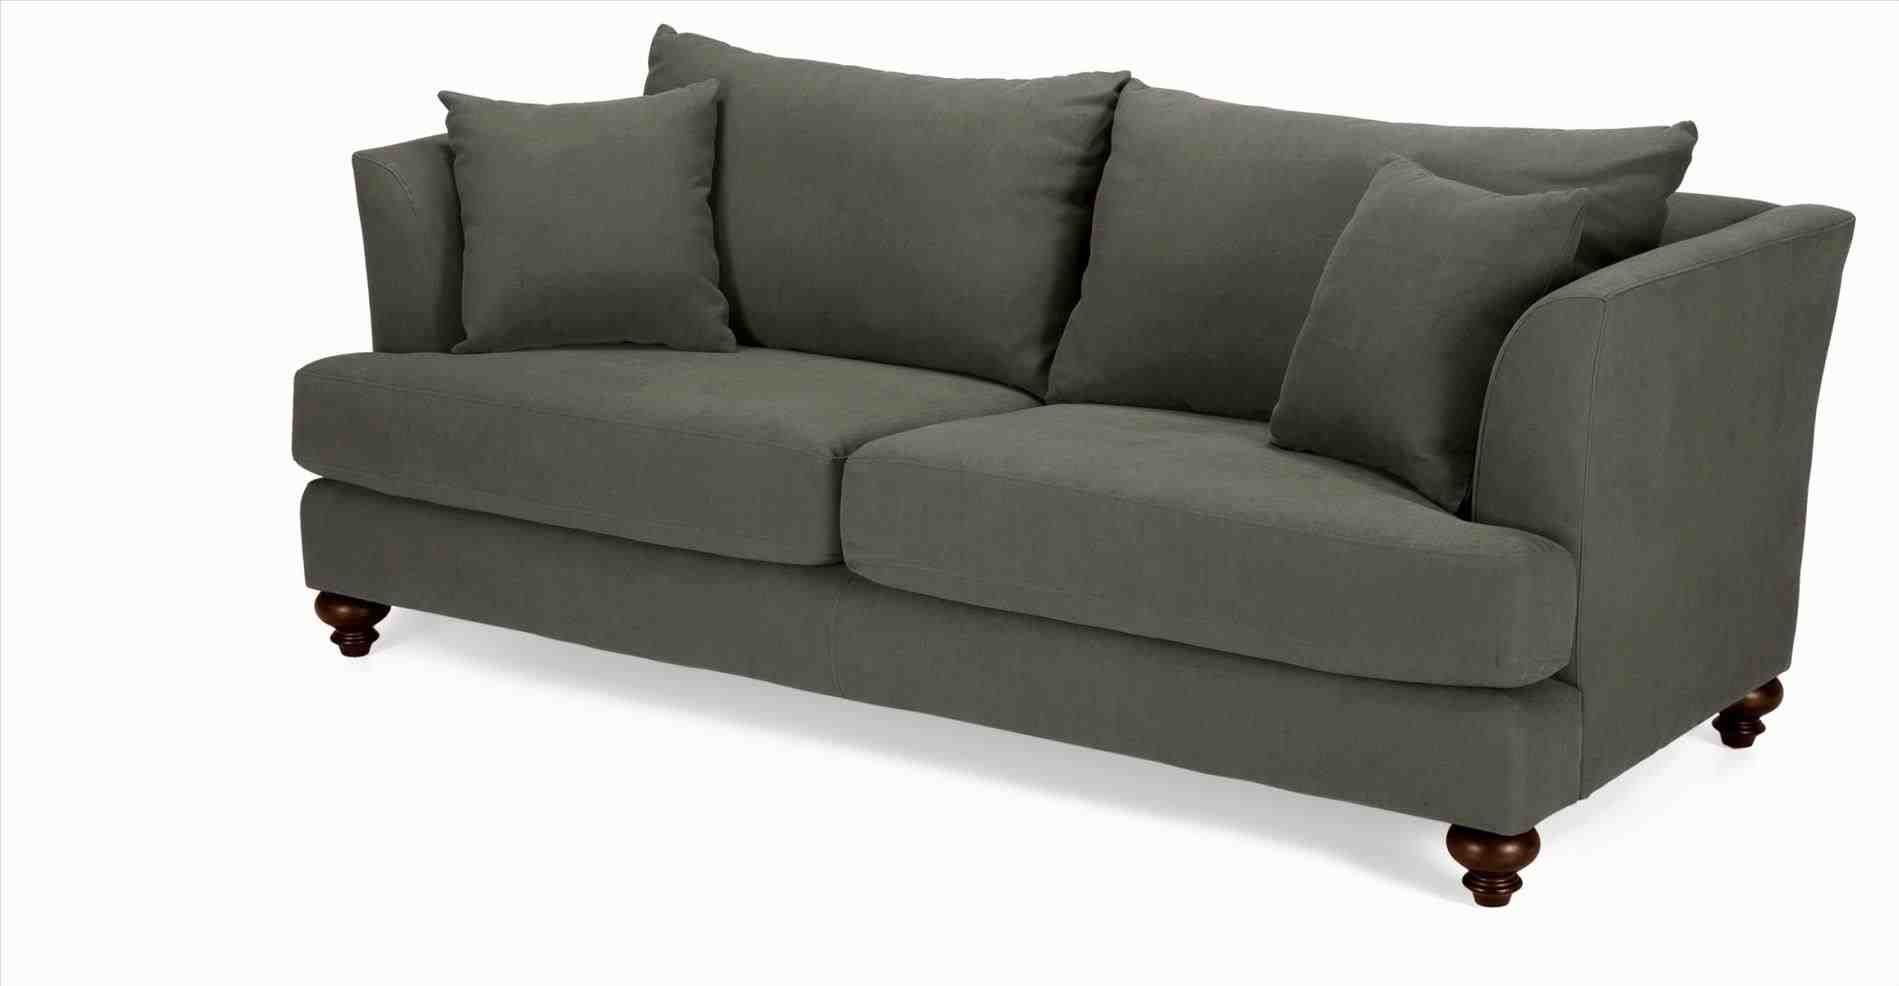 Sofa Bed For Awesome Sleeper Toronto Fold Up Couch